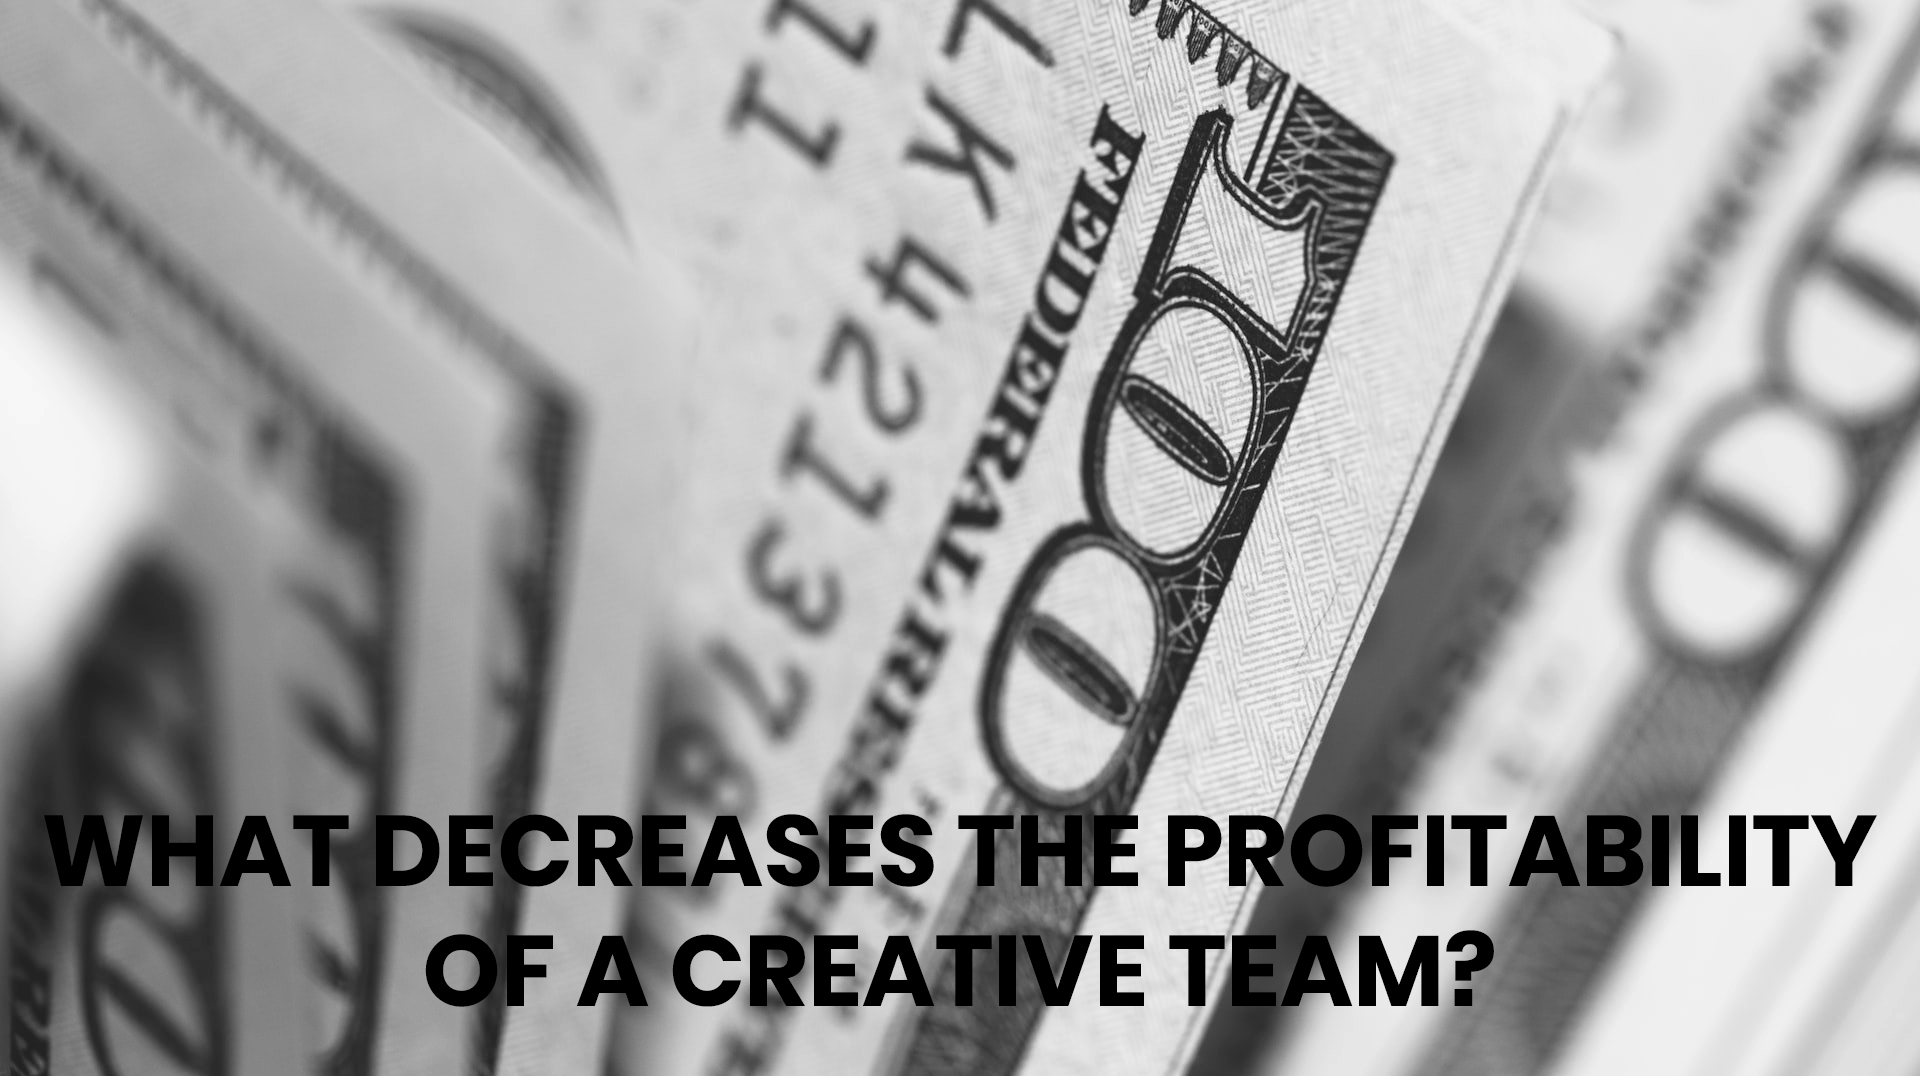 What decreases the profitability of a creative team?